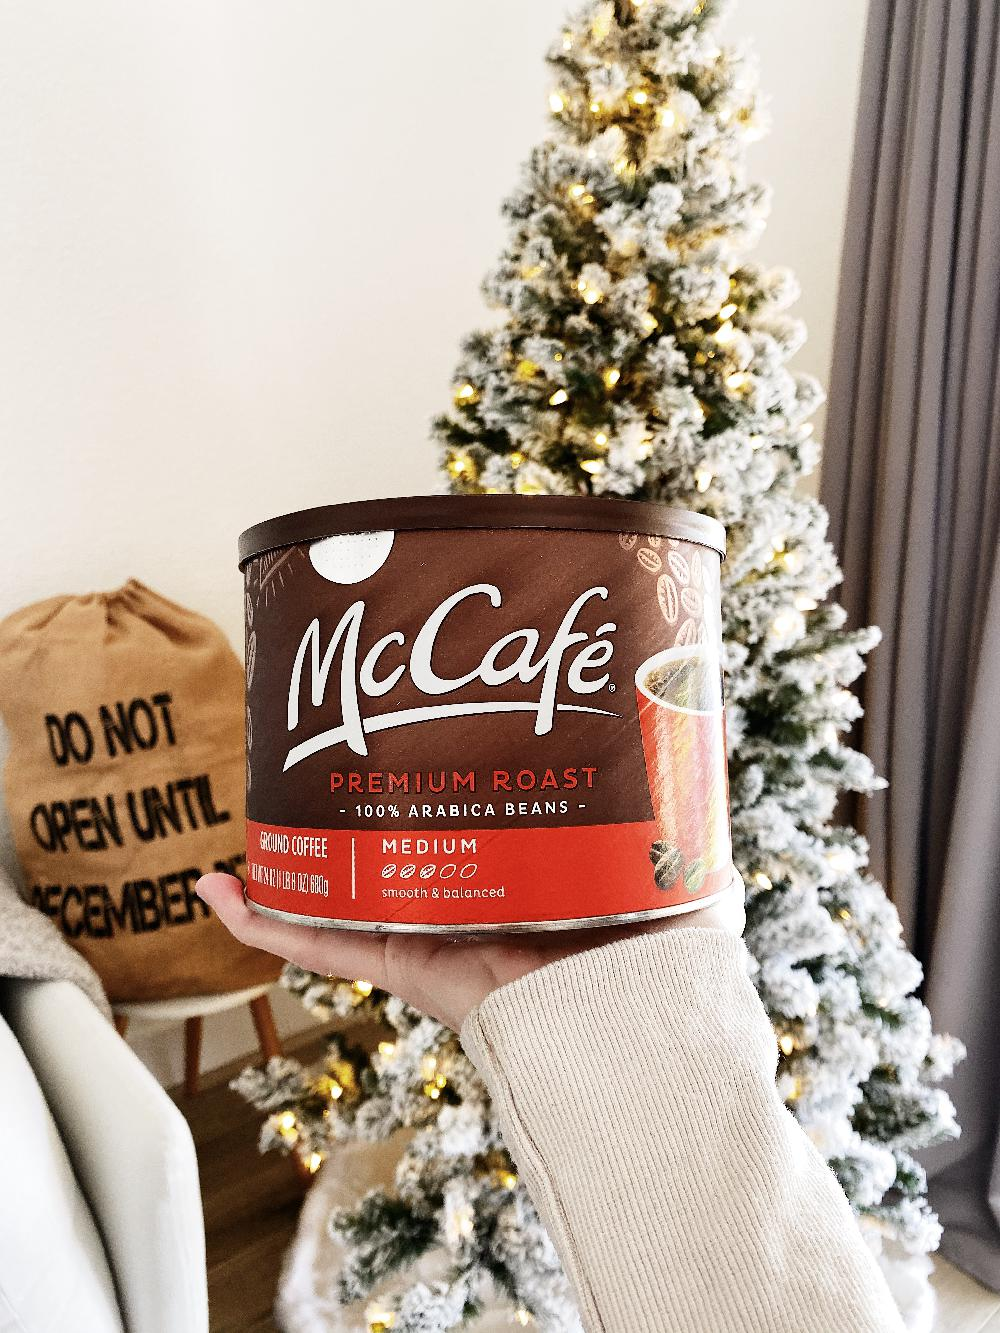 MY MORNING ROUTINE WITH McCafe